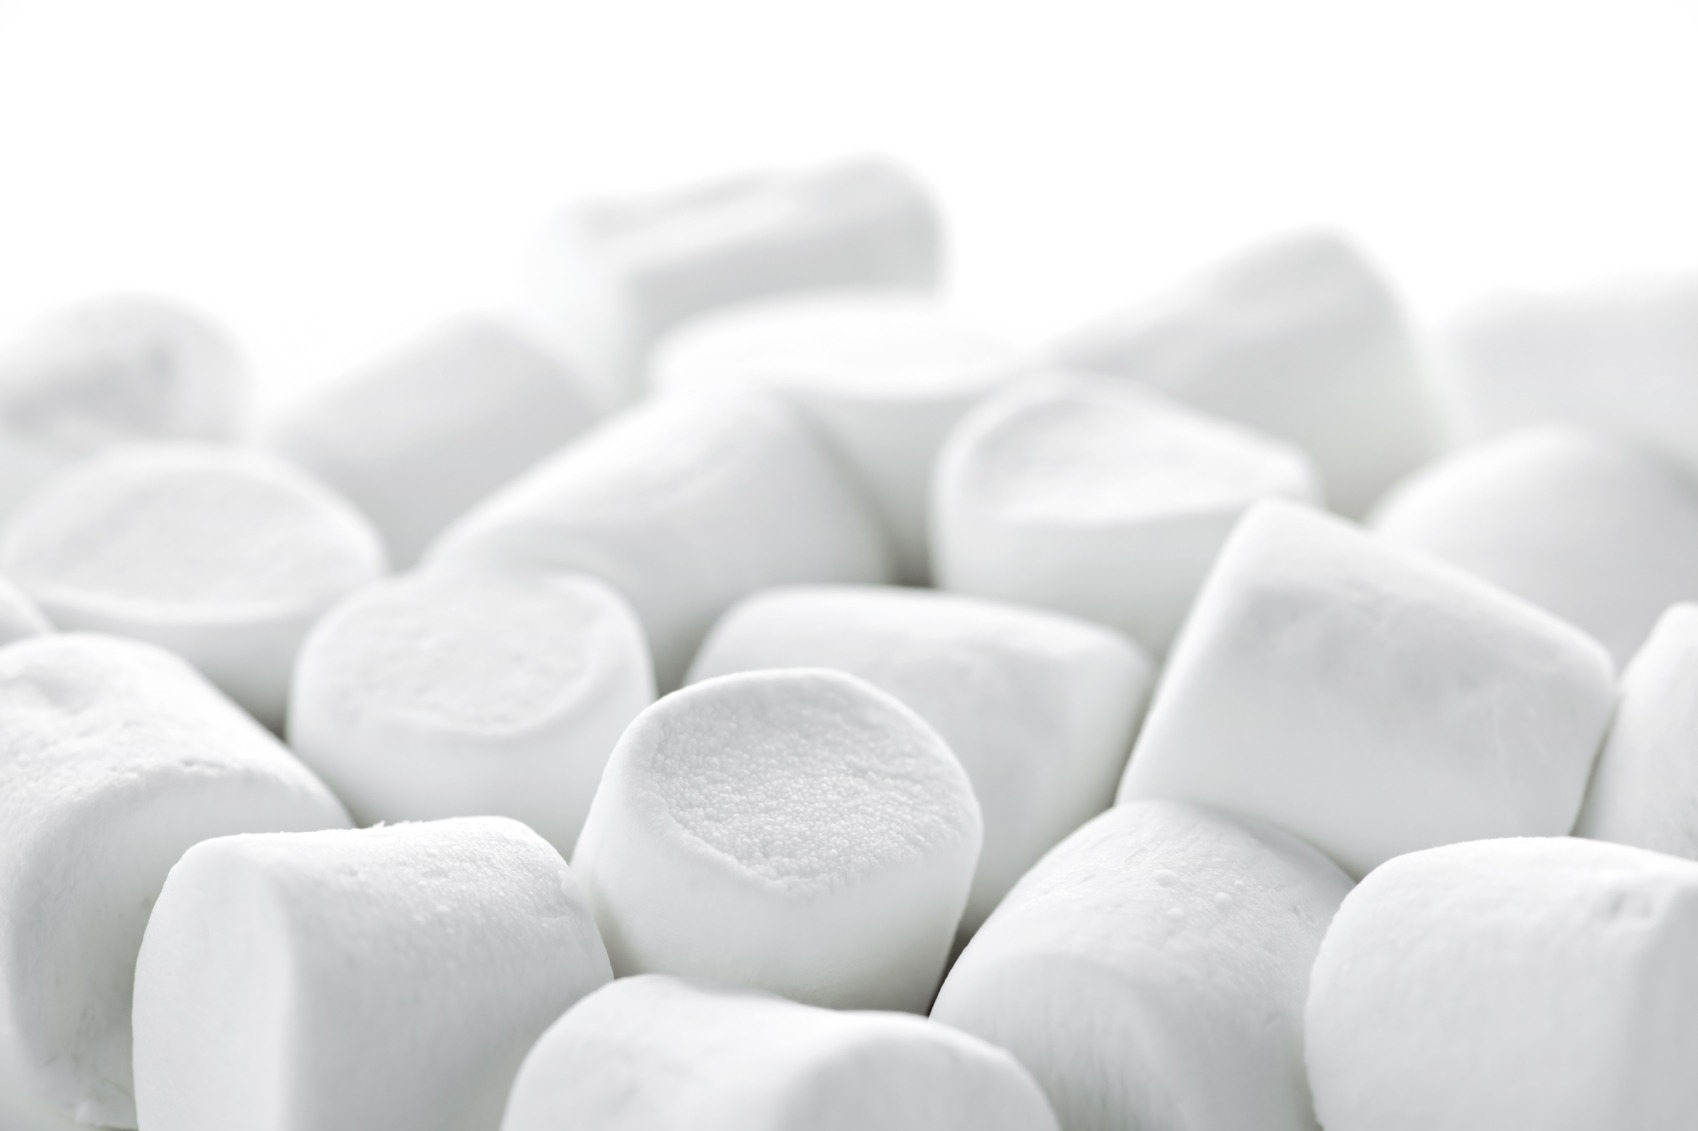 What You Can Learn From the Marshmallow Test